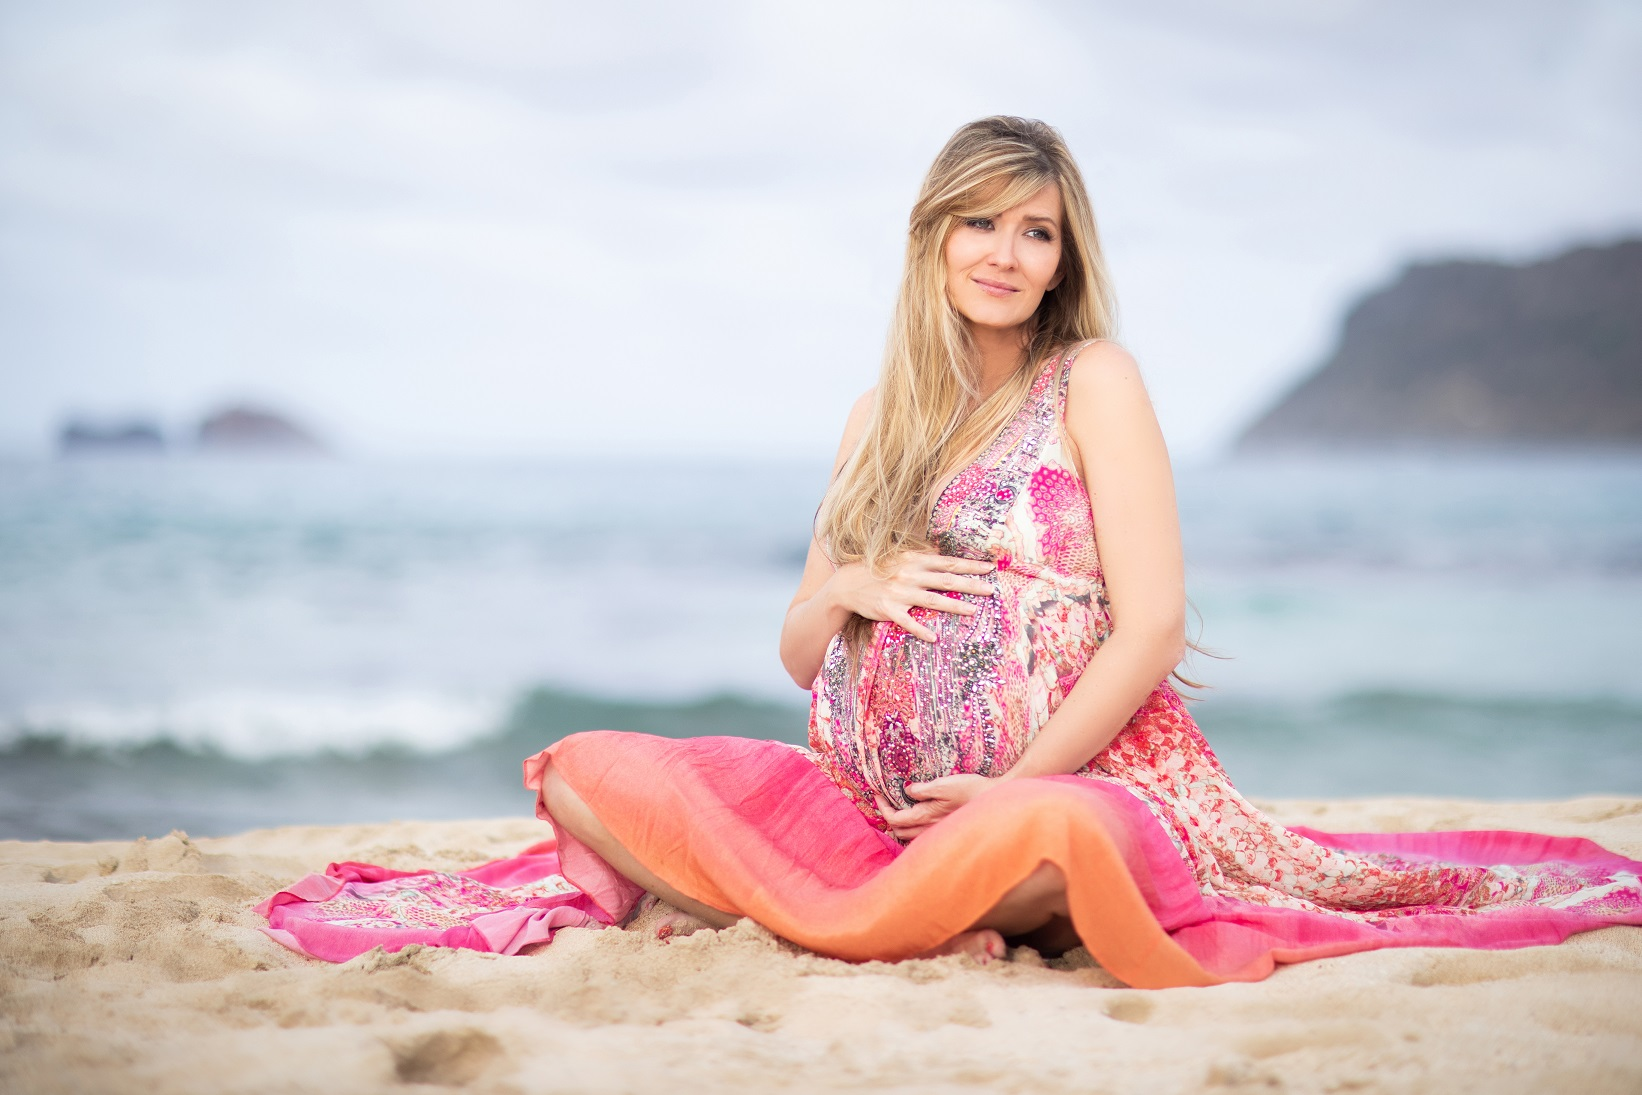 oahu hawaii beach maternity baby bump portrait